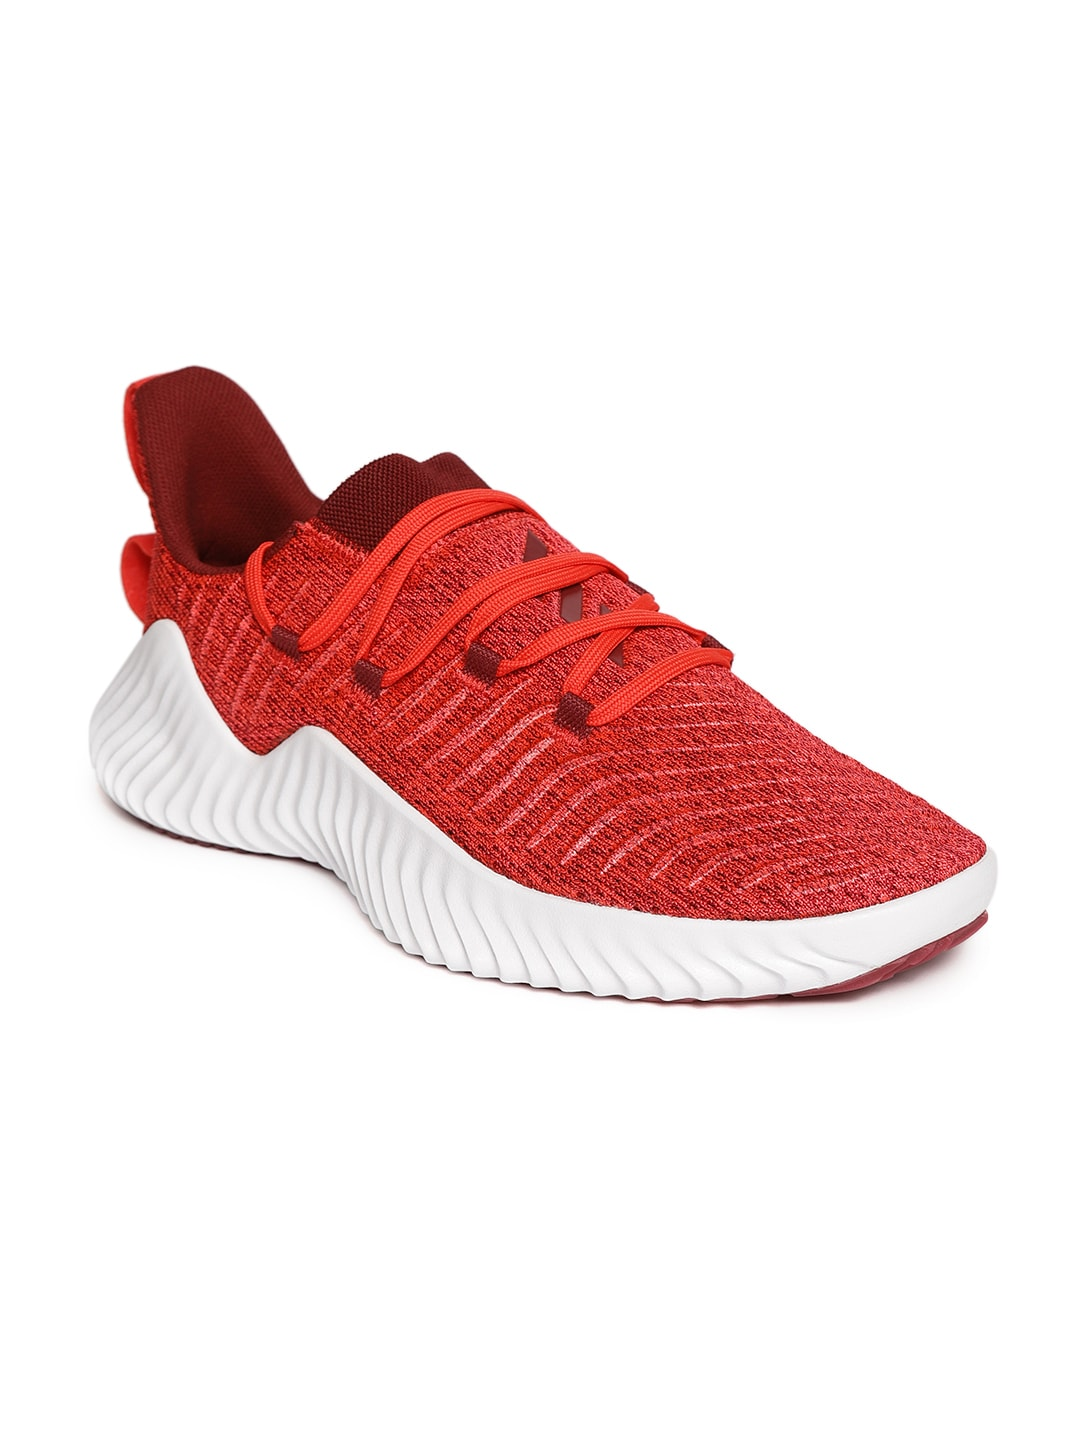 san francisco abdc0 2875e Sports Shoes - Buy Sport Shoes For Men  Women Online  Myntra